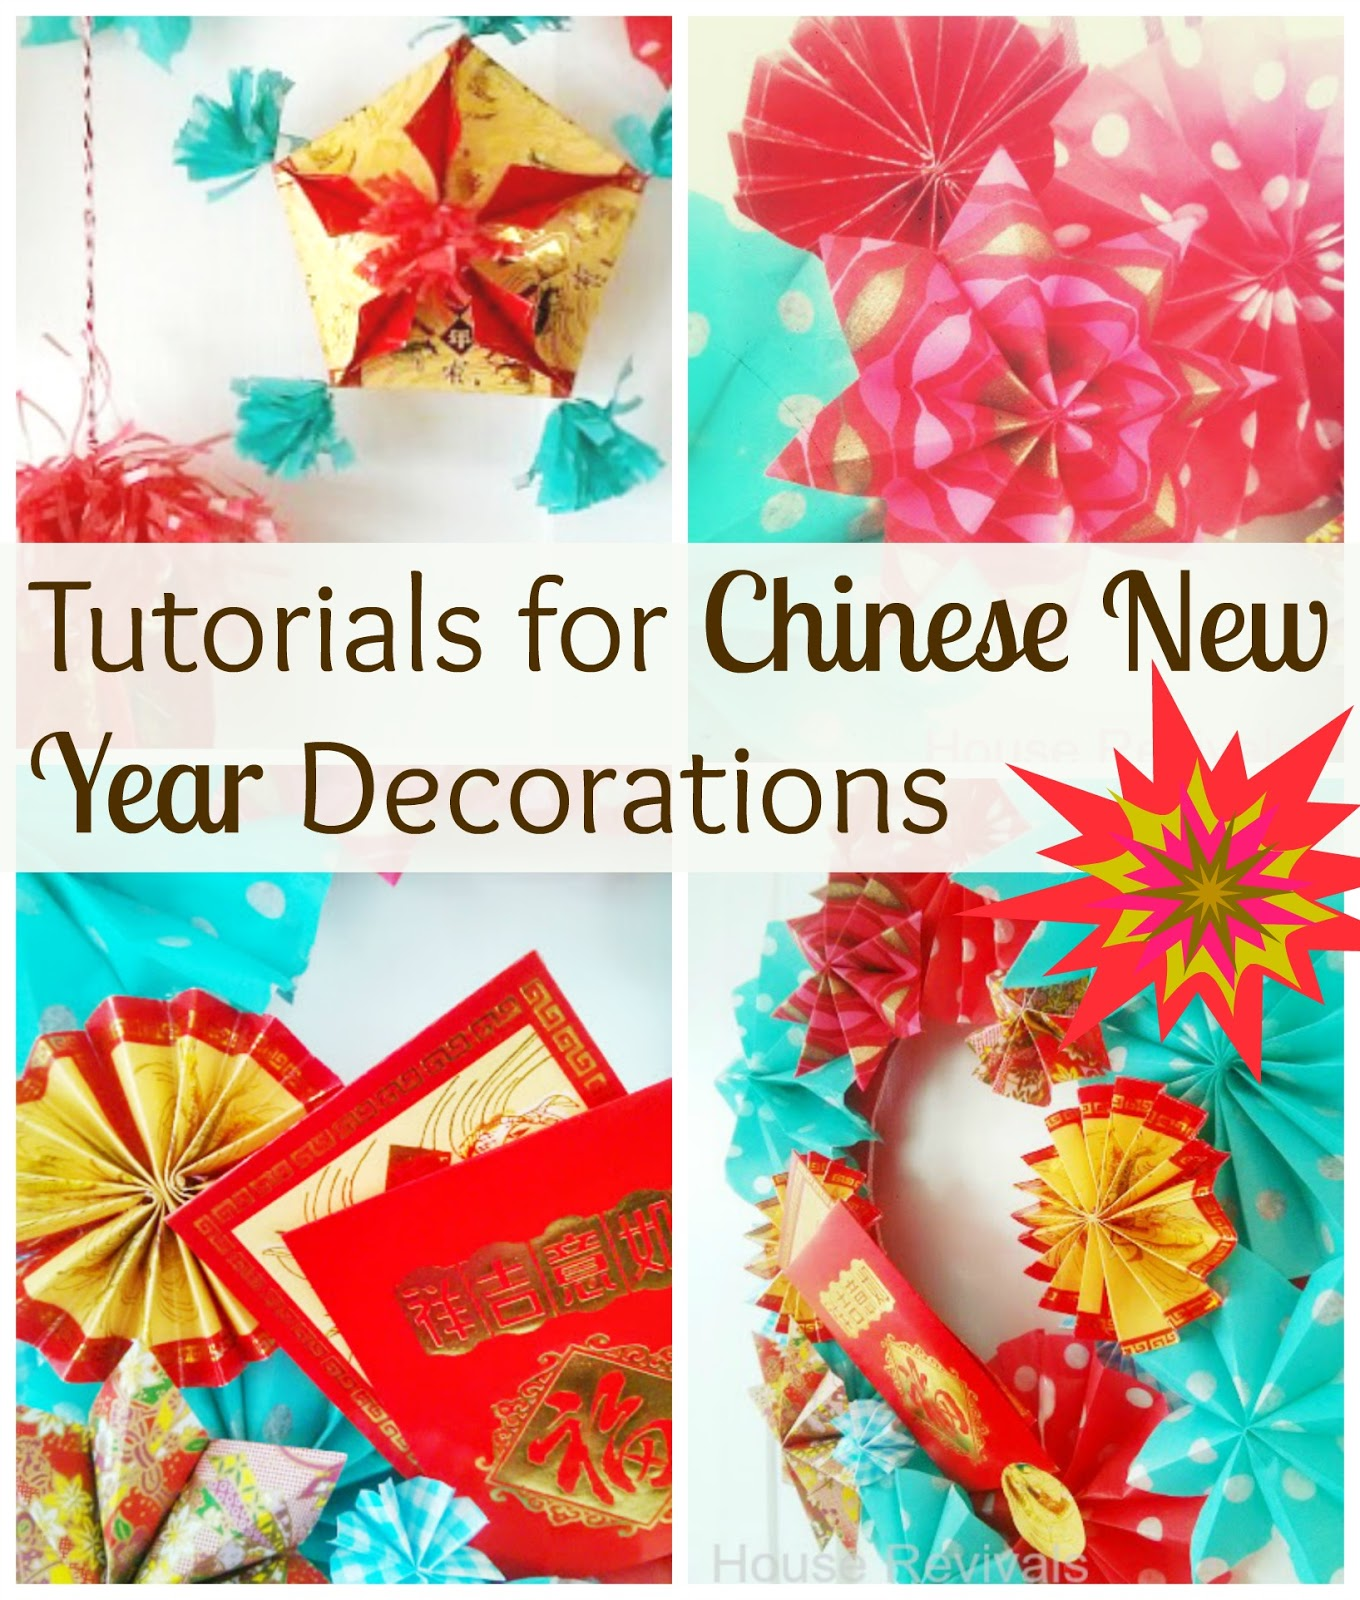 house revivals craft ideas for chinese new year